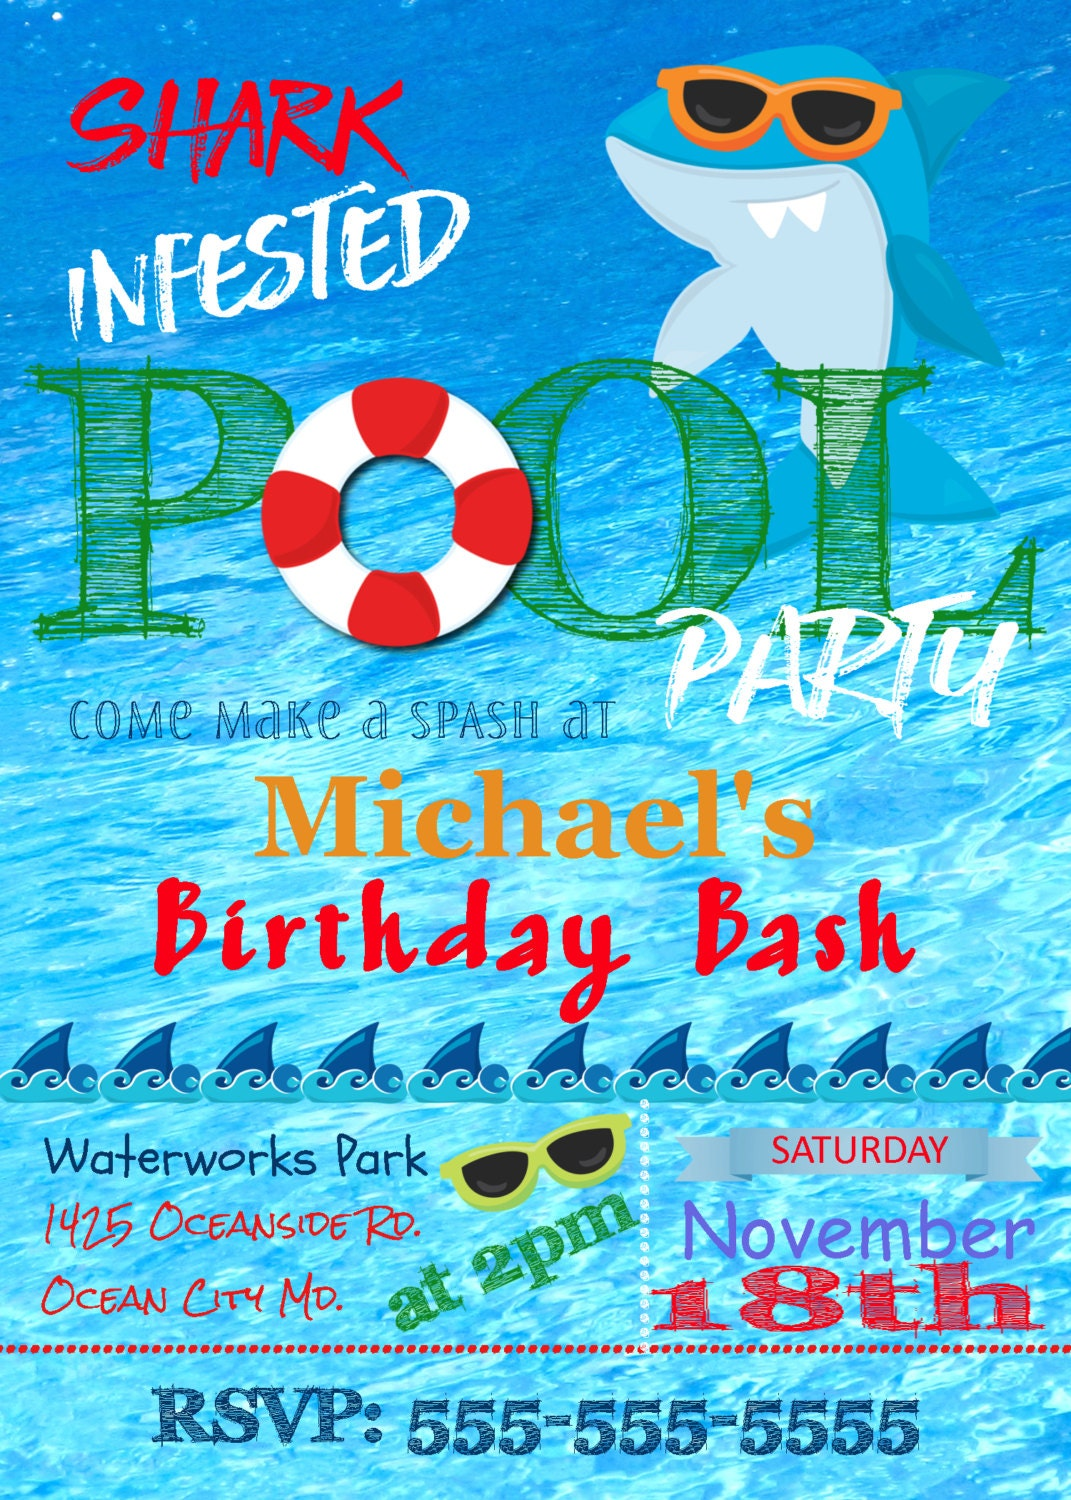 Shark Invitation PrintableShark Birthday InvitationPool Party – Shark Invitations Birthday Party